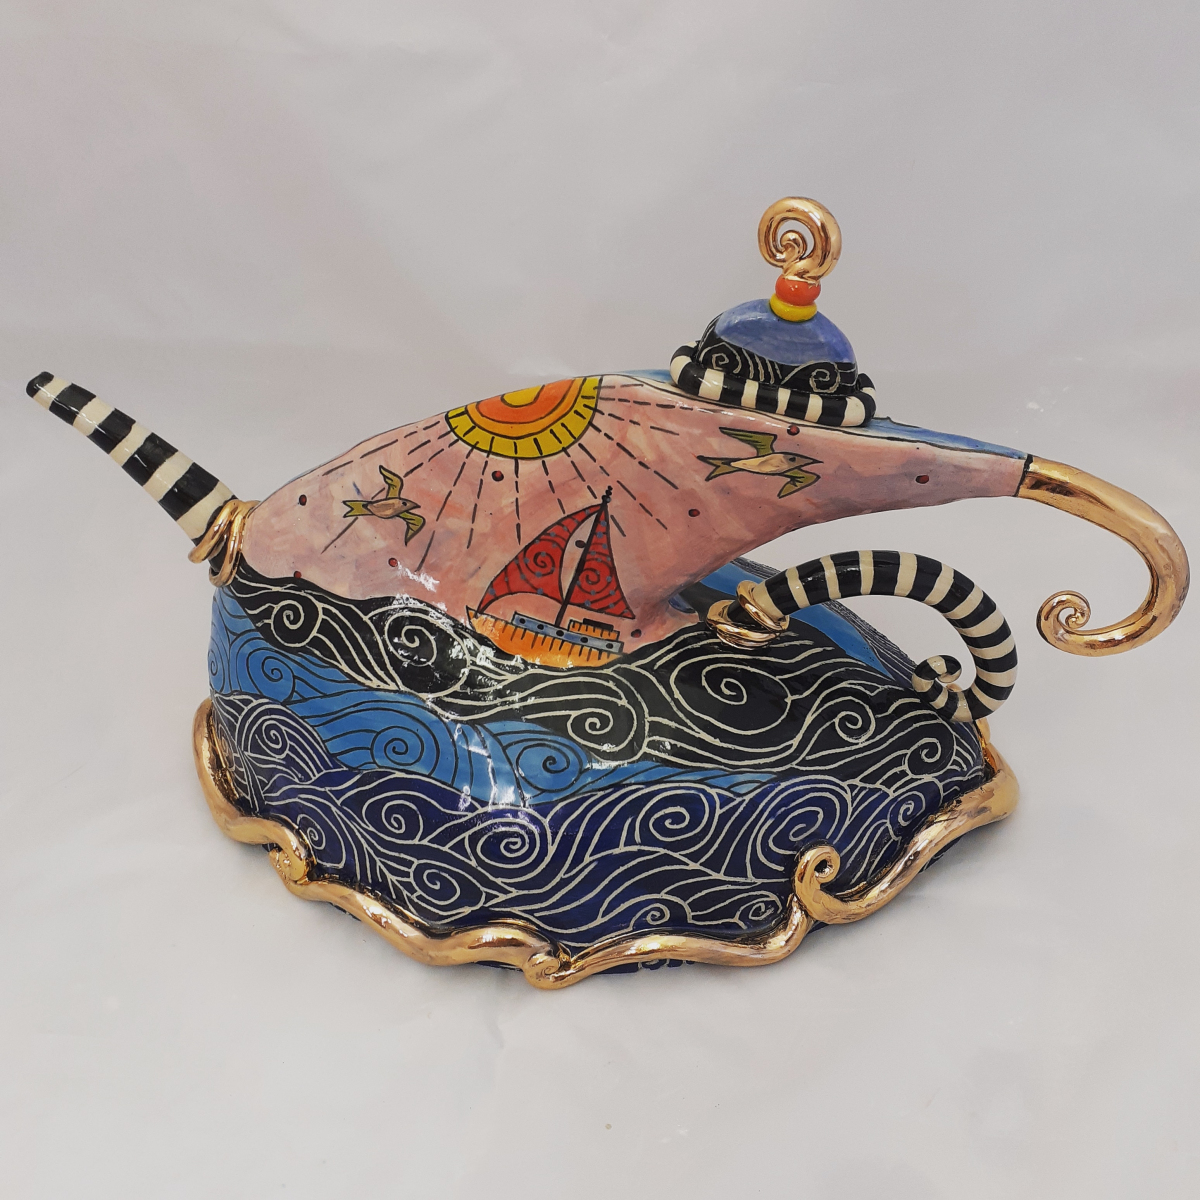 Ceramic glazed teapot in blues and navy in the shape of a boat afloat at sea